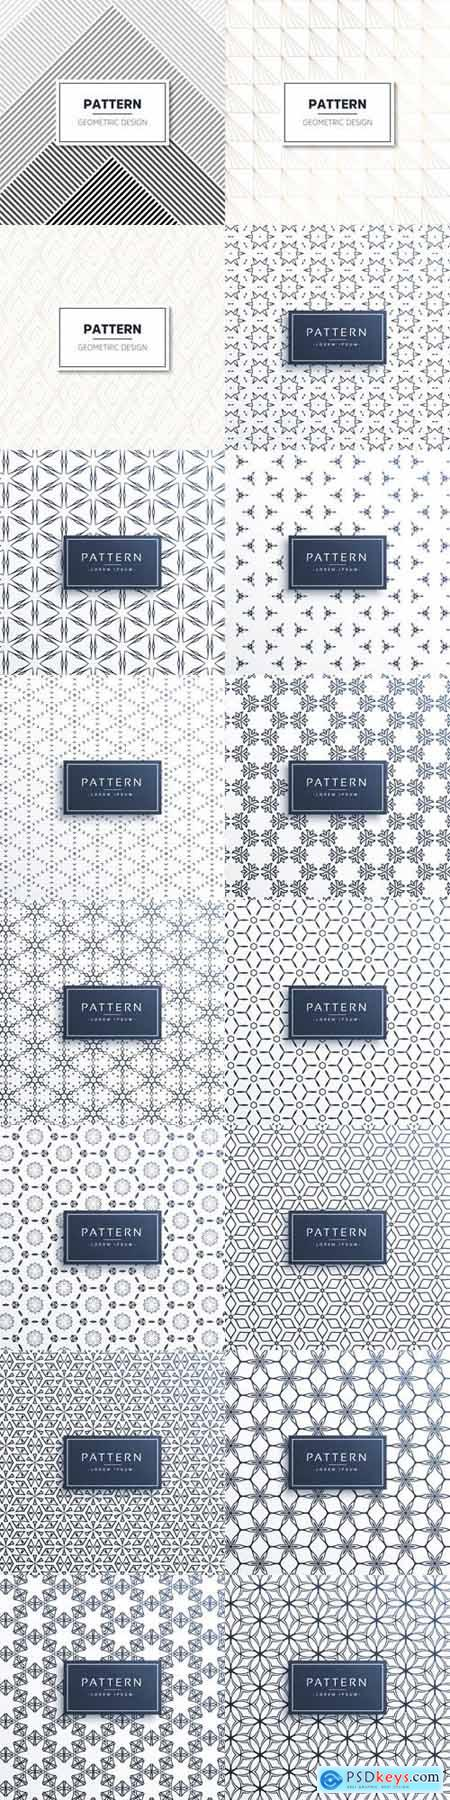 16 Seamless Patterns - Vector Graphics